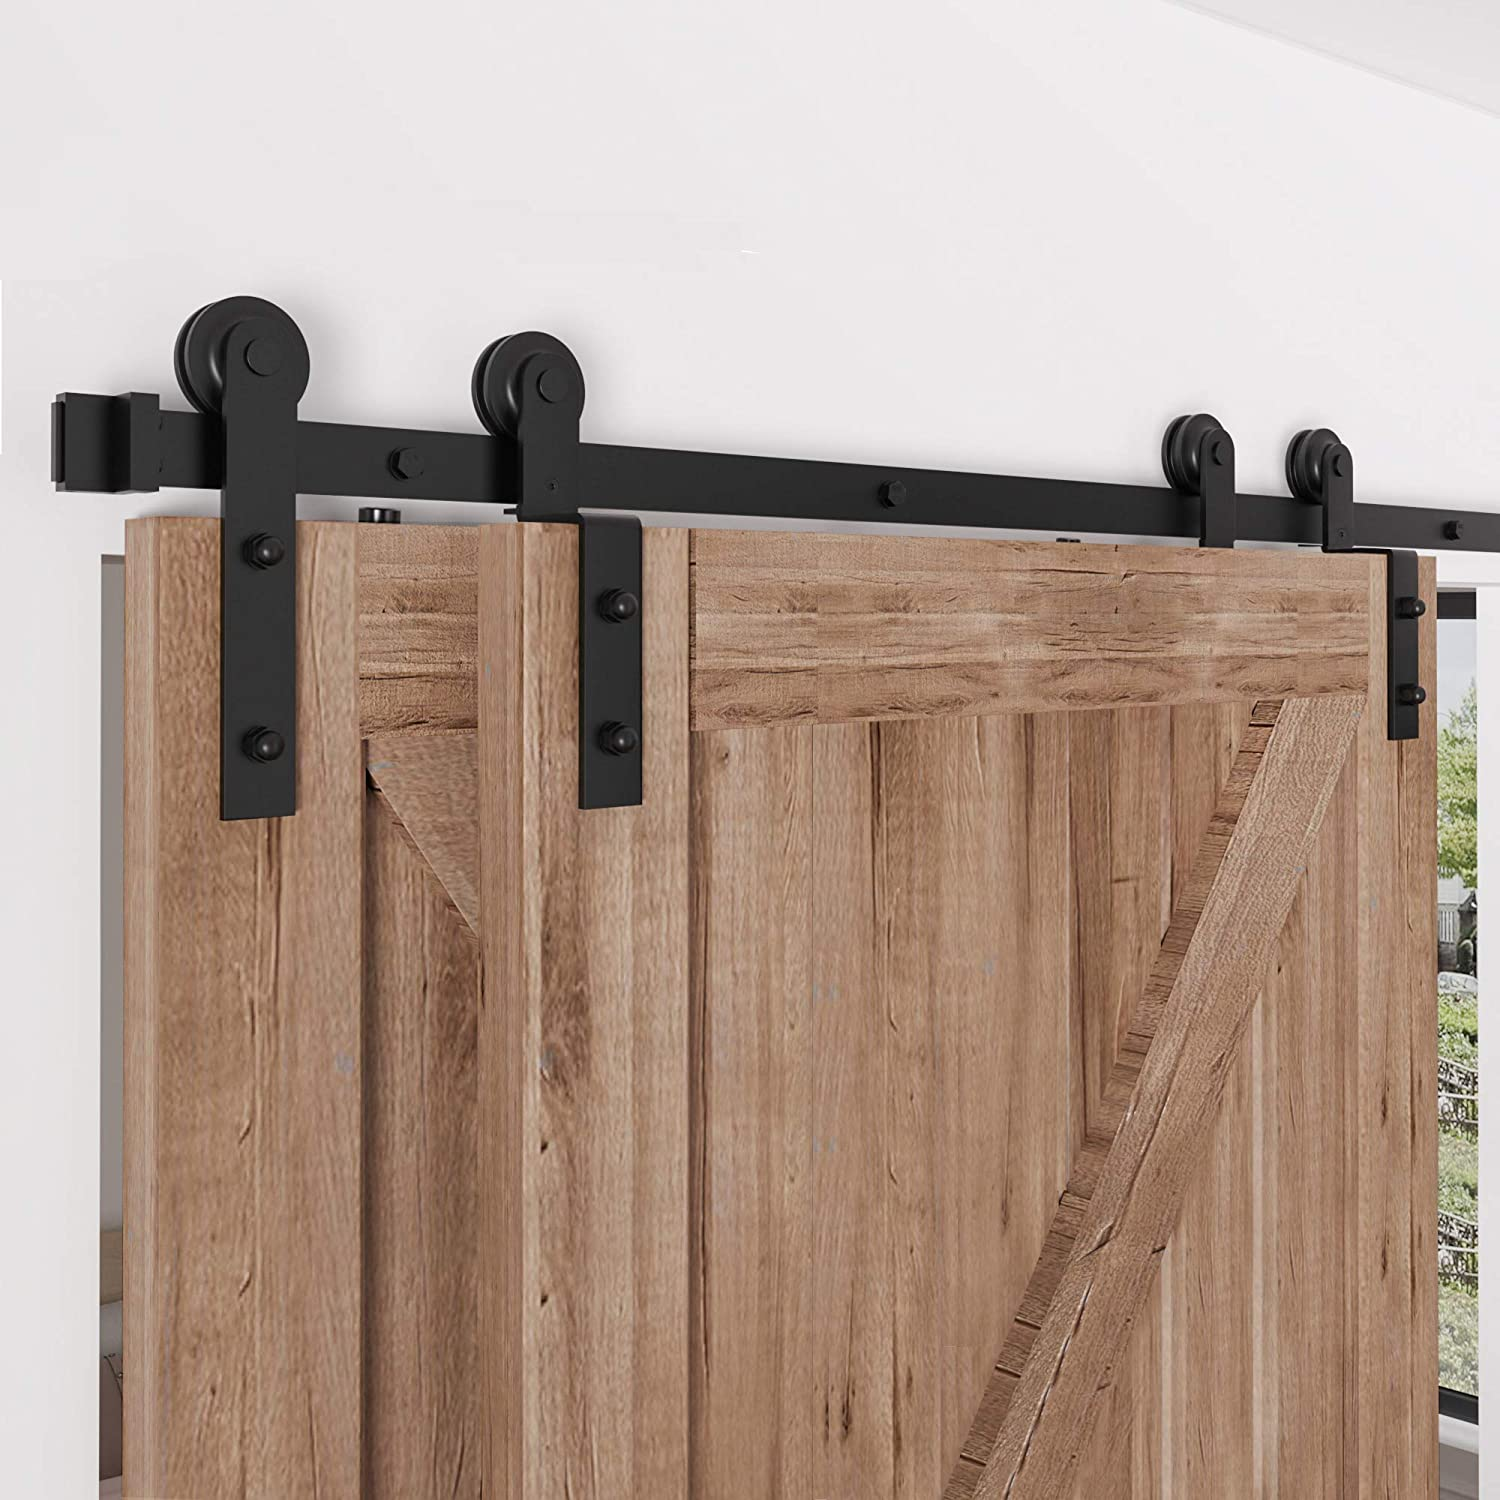 Zekoo 4 Ft 12 Ft Bypass Sliding Barn Door Hardware Kit Single Track Double Wooden Doors Use Flat Track Roller One Piece Rail Low Ceiling 6ft Single Track Bypass Home Improvement